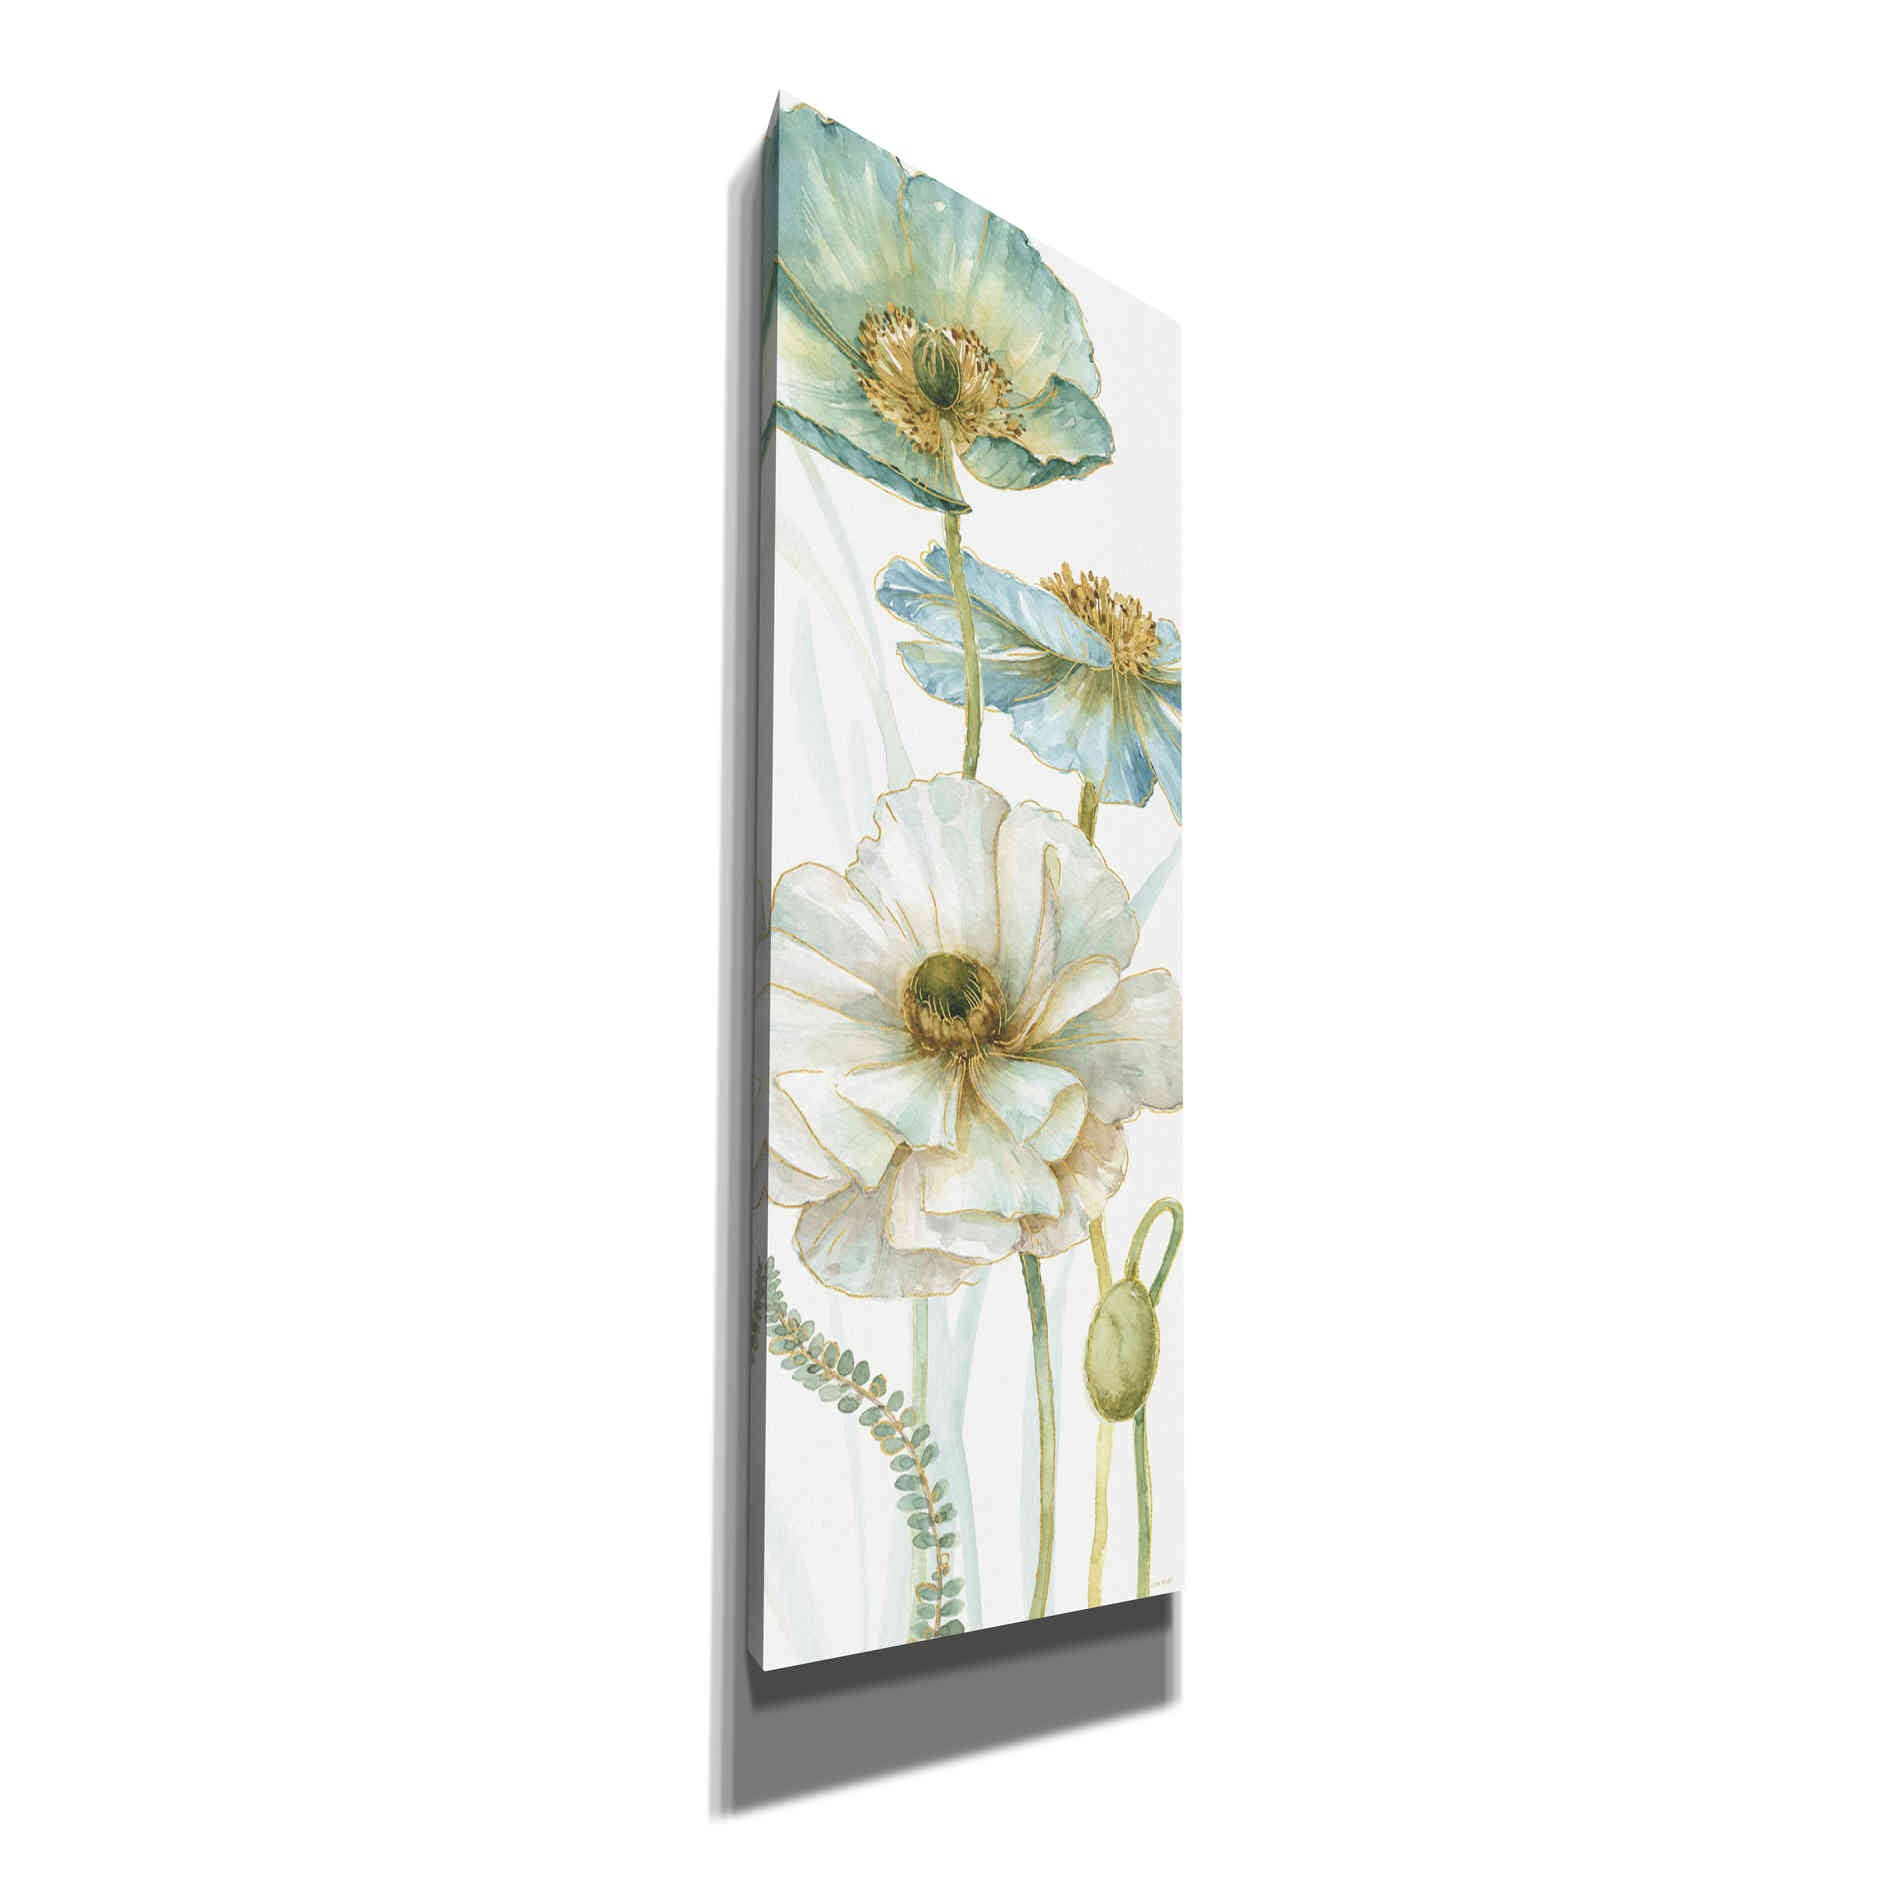 Epic Graffiti 'My Greenhouse Flowers VIII' by Lisa Audit, Canvas Wall Art